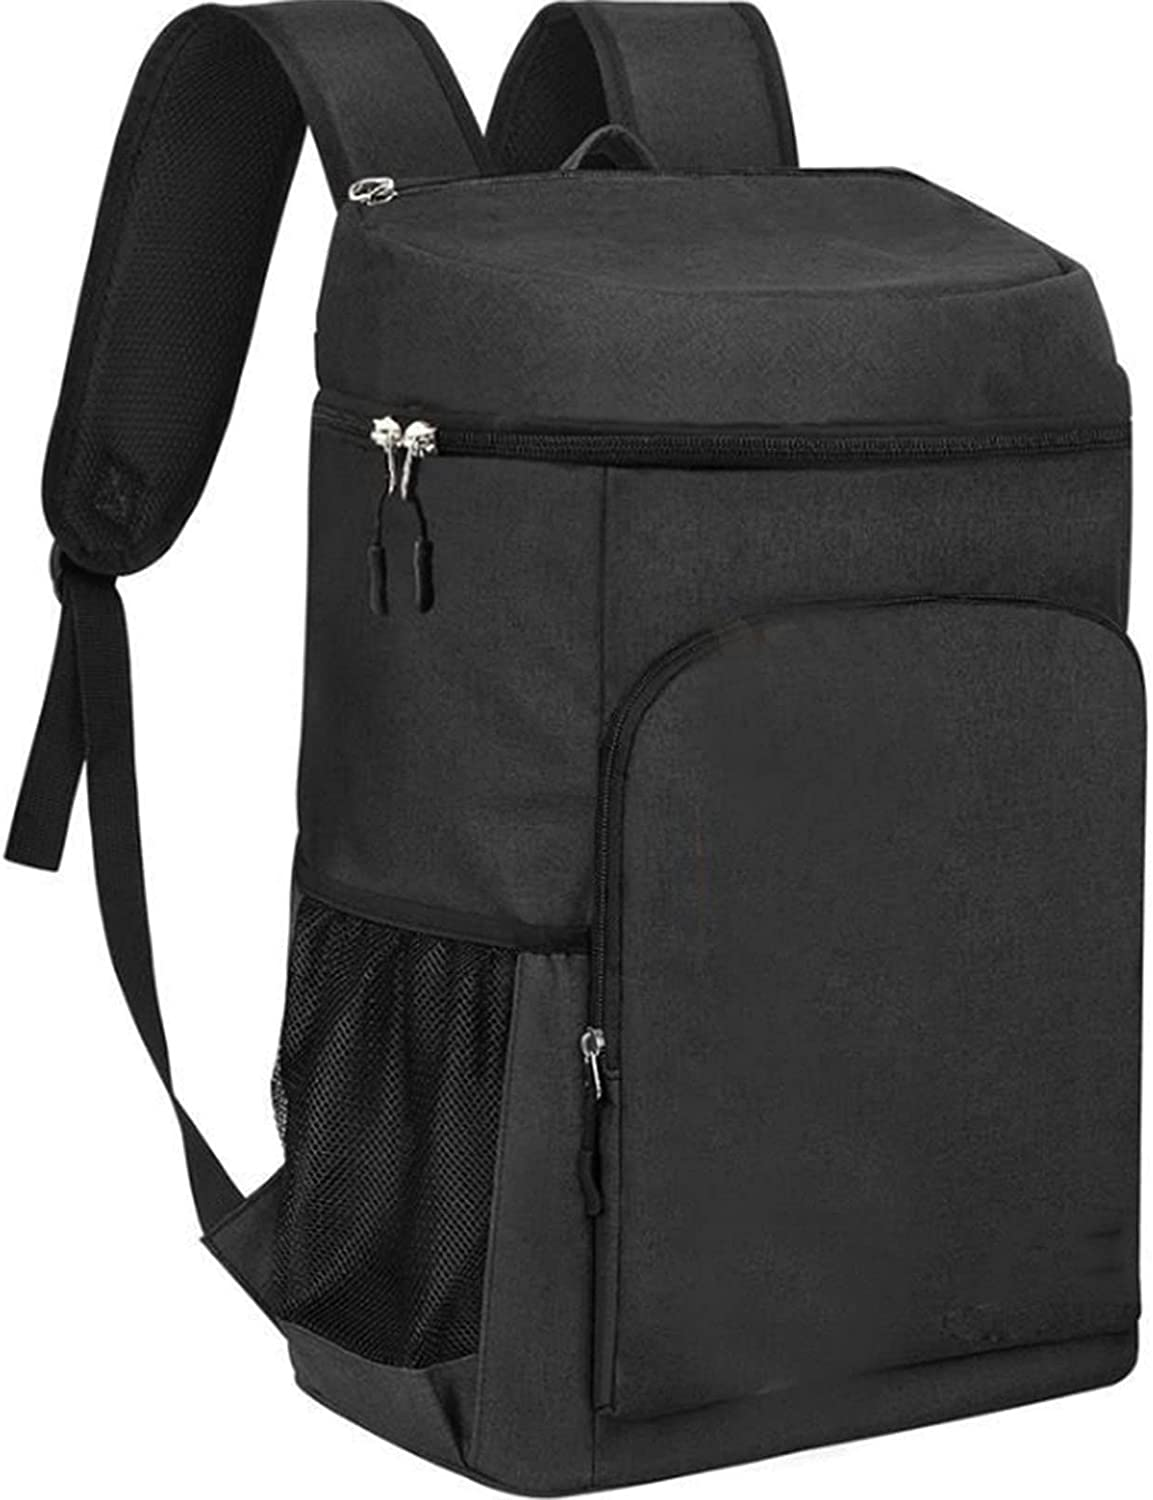 Cooler Backpack Insulated Large Limited price Lightweight Capacity OFFicial store W